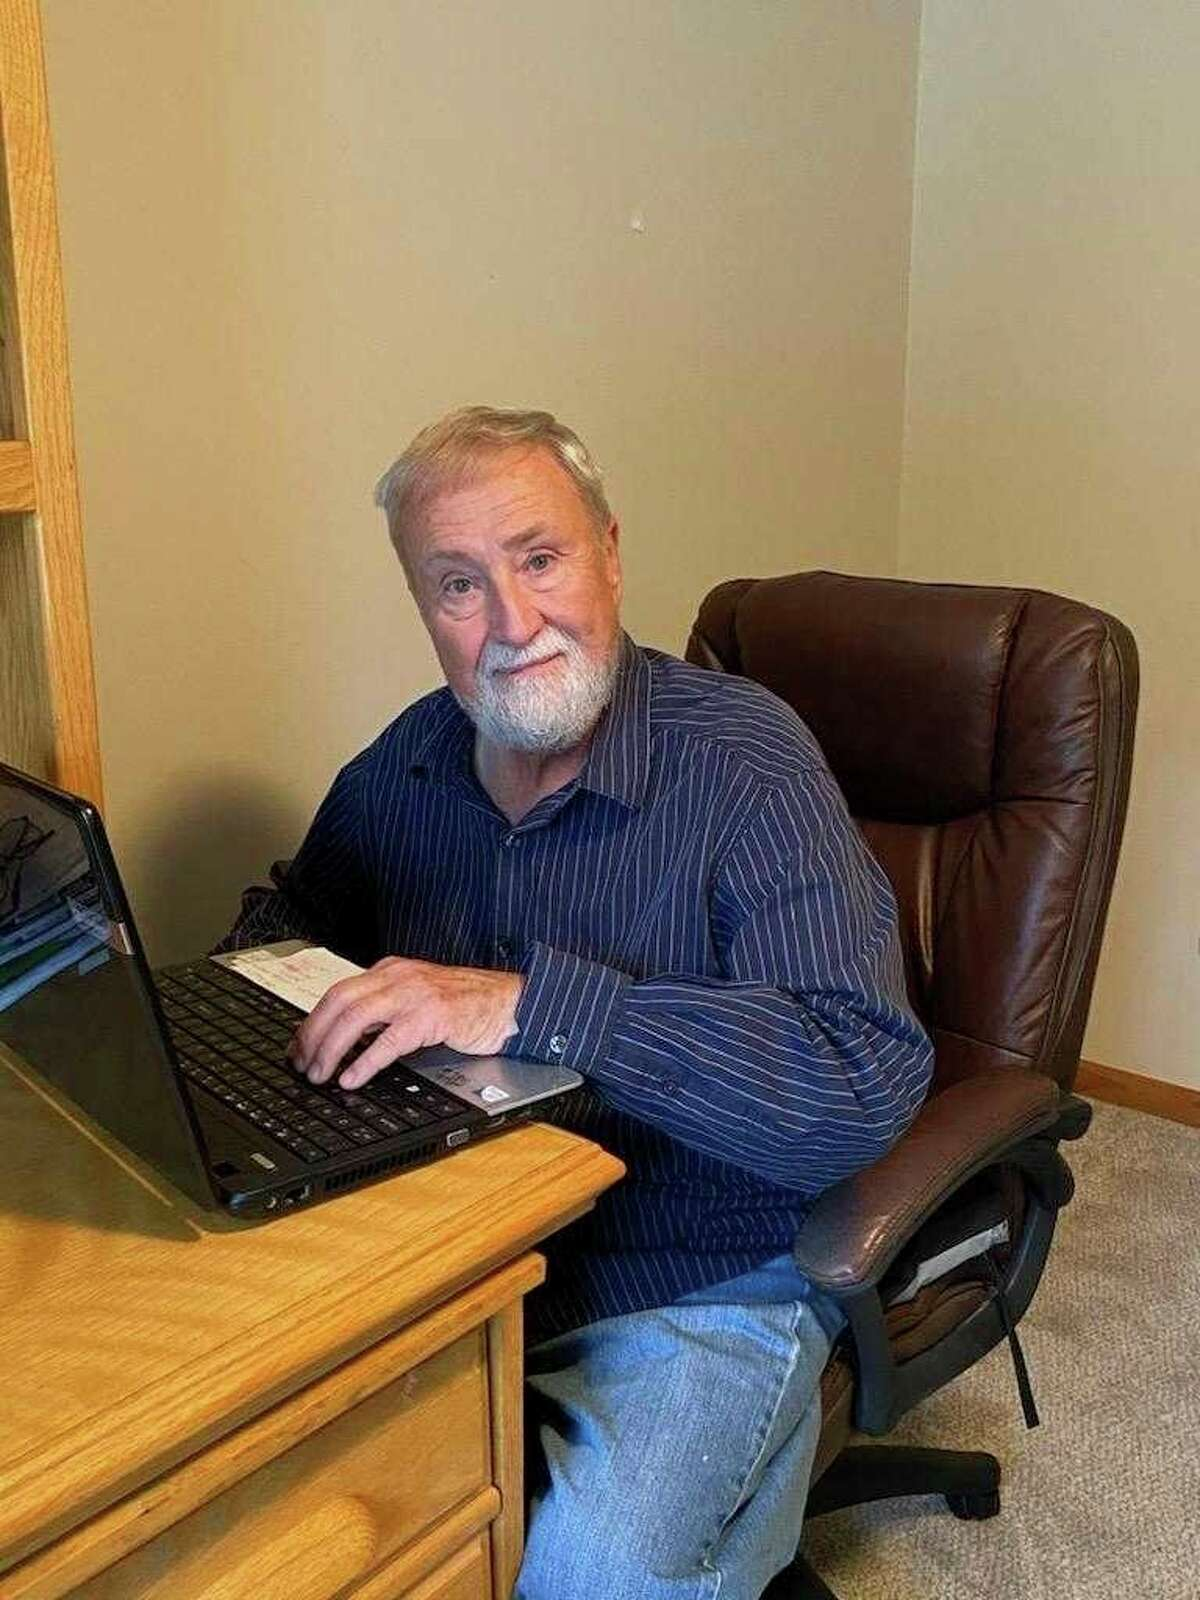 Rich Harp's time at the keyboard will no longer be in an effort to wrap up a story, as Harp has decided to retire from journalism. (Courtesy Photo)